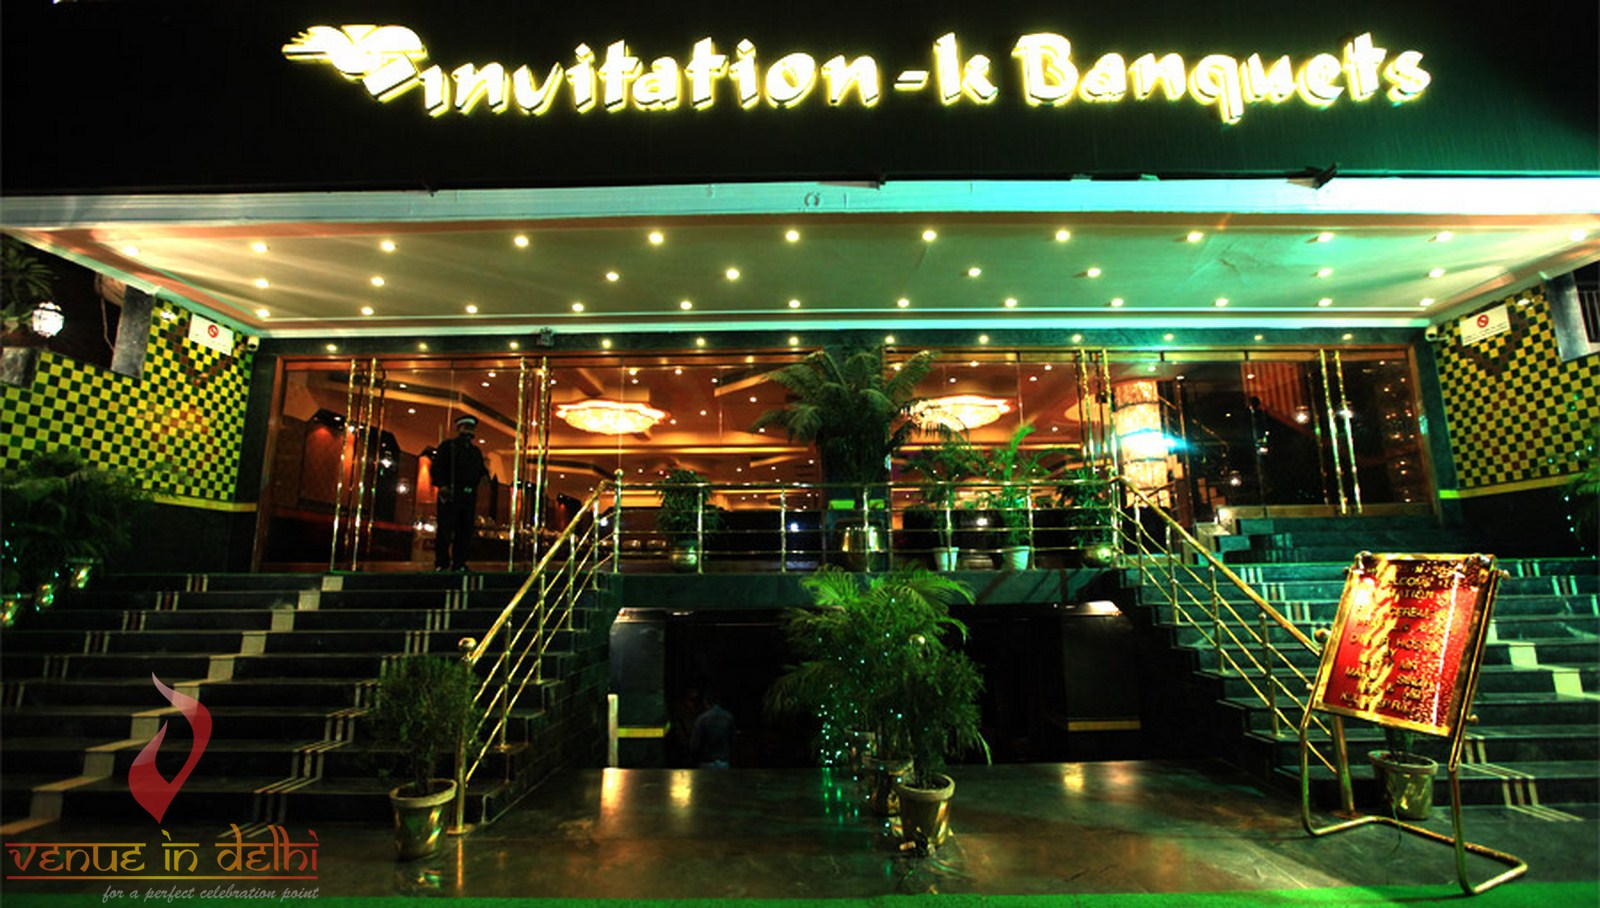 Invitation k banquets venue in delhi venue in delhi about invitation k banquets stopboris Images